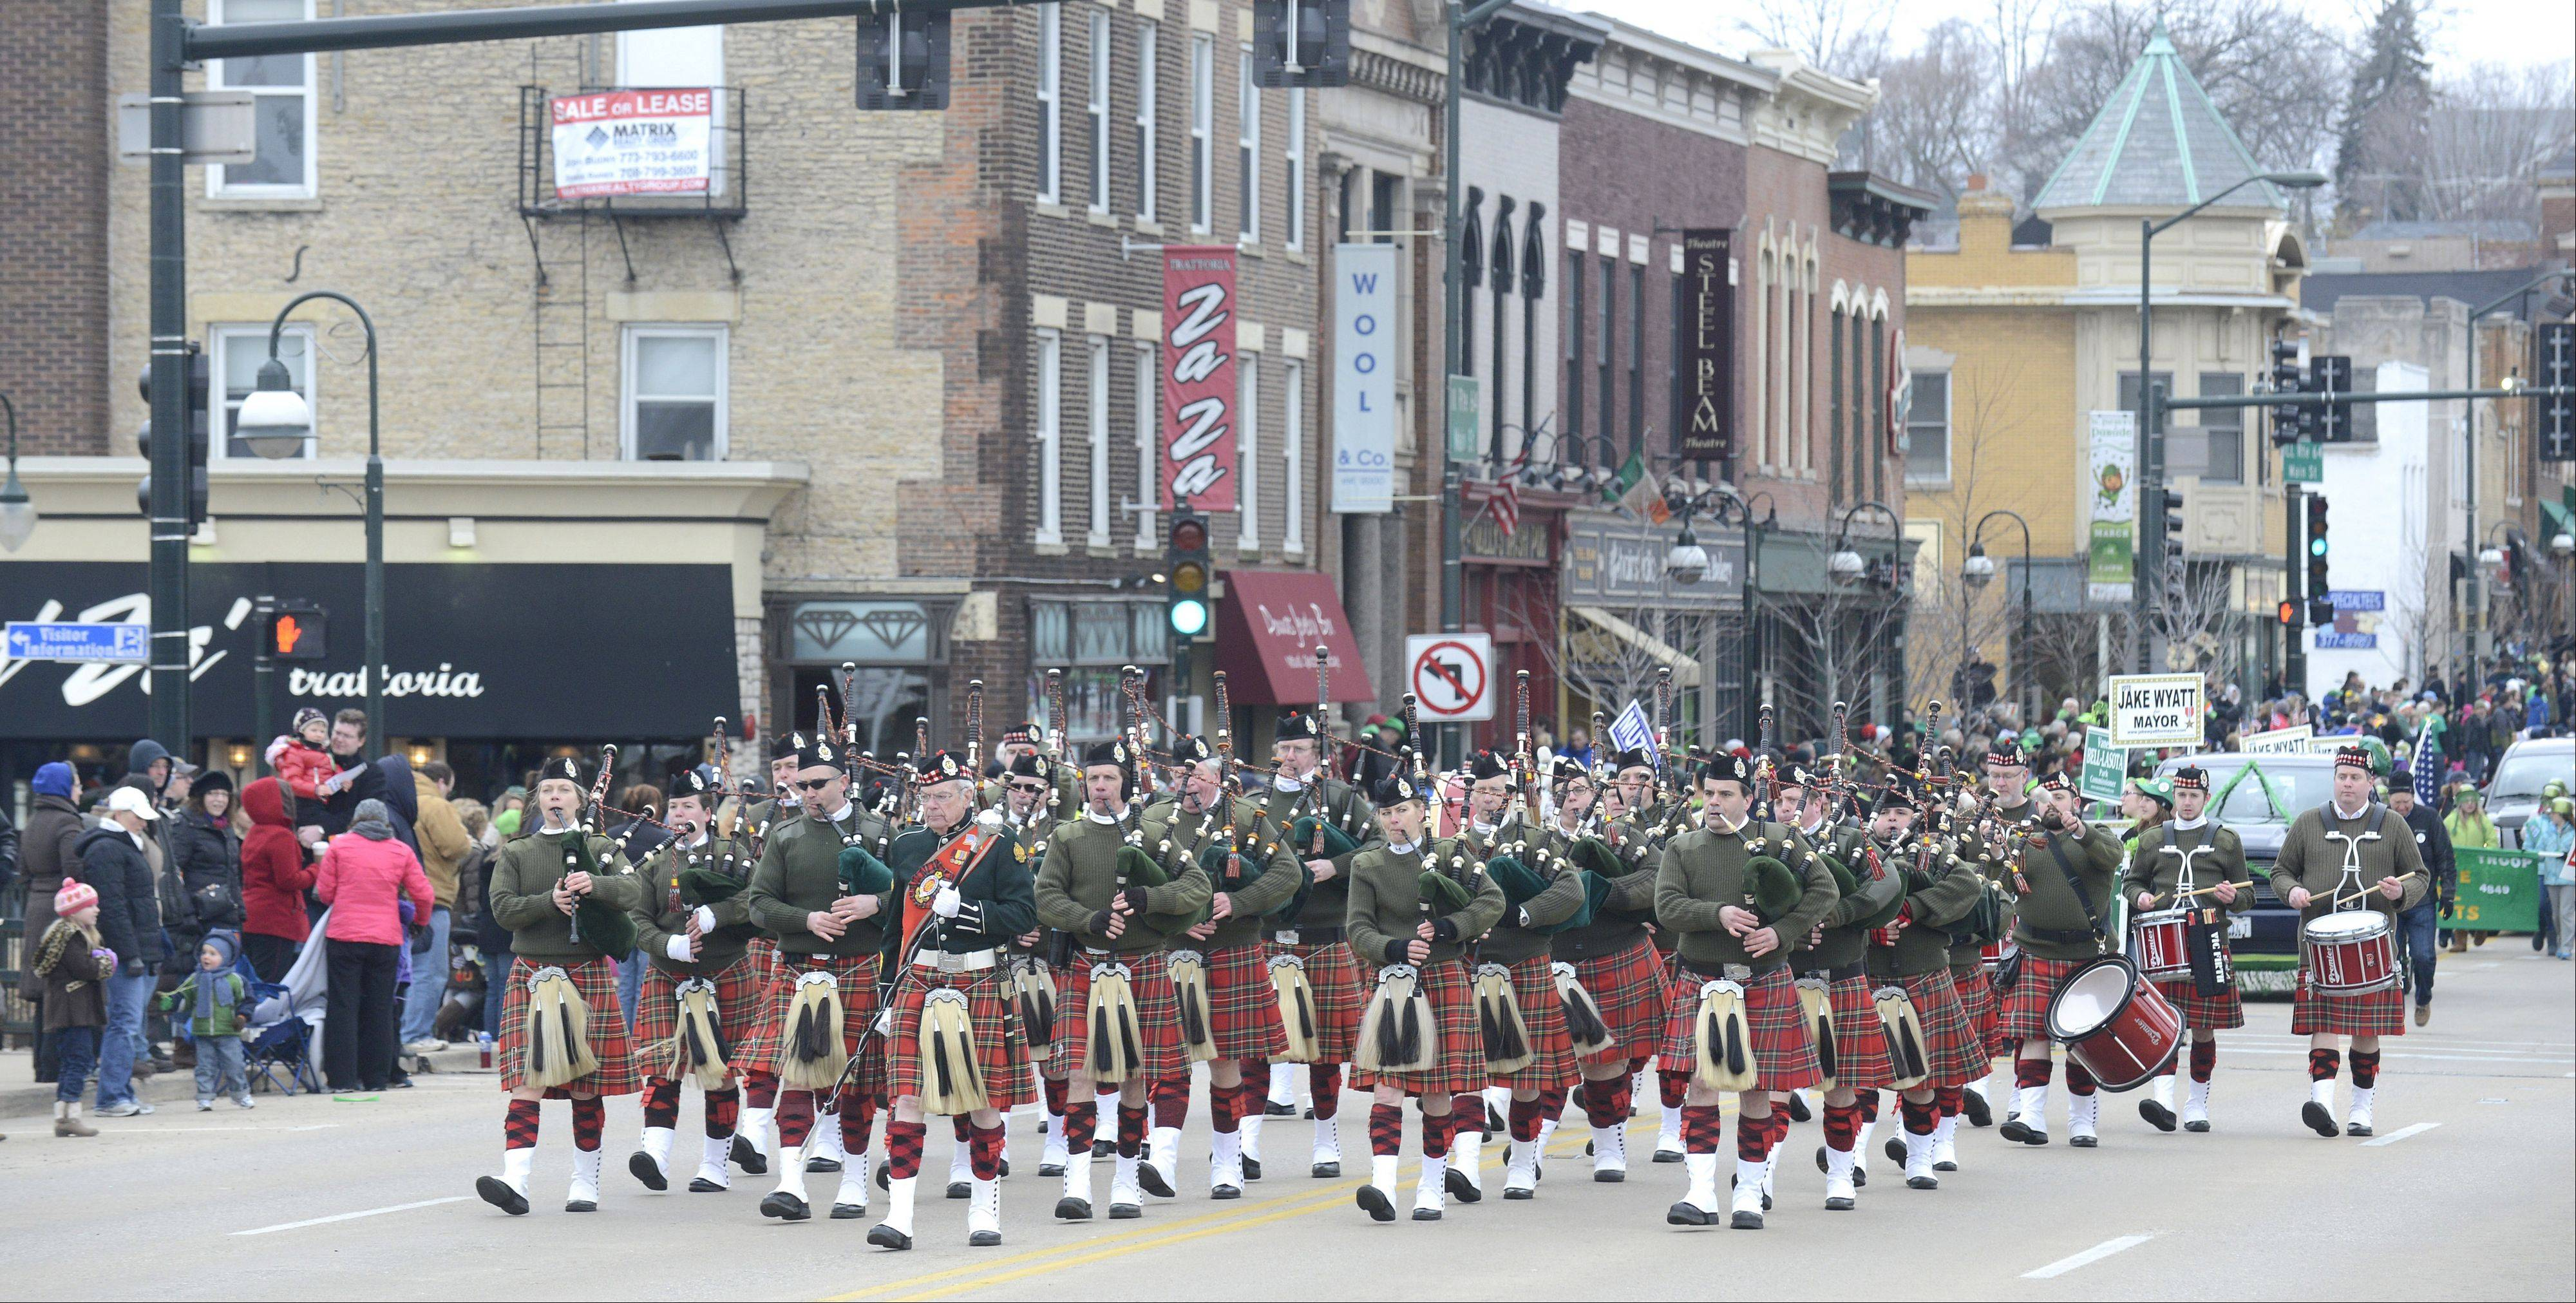 The Chicago Highlanders Pipes and Drums marches down Main Street in St. Charles Saturday.